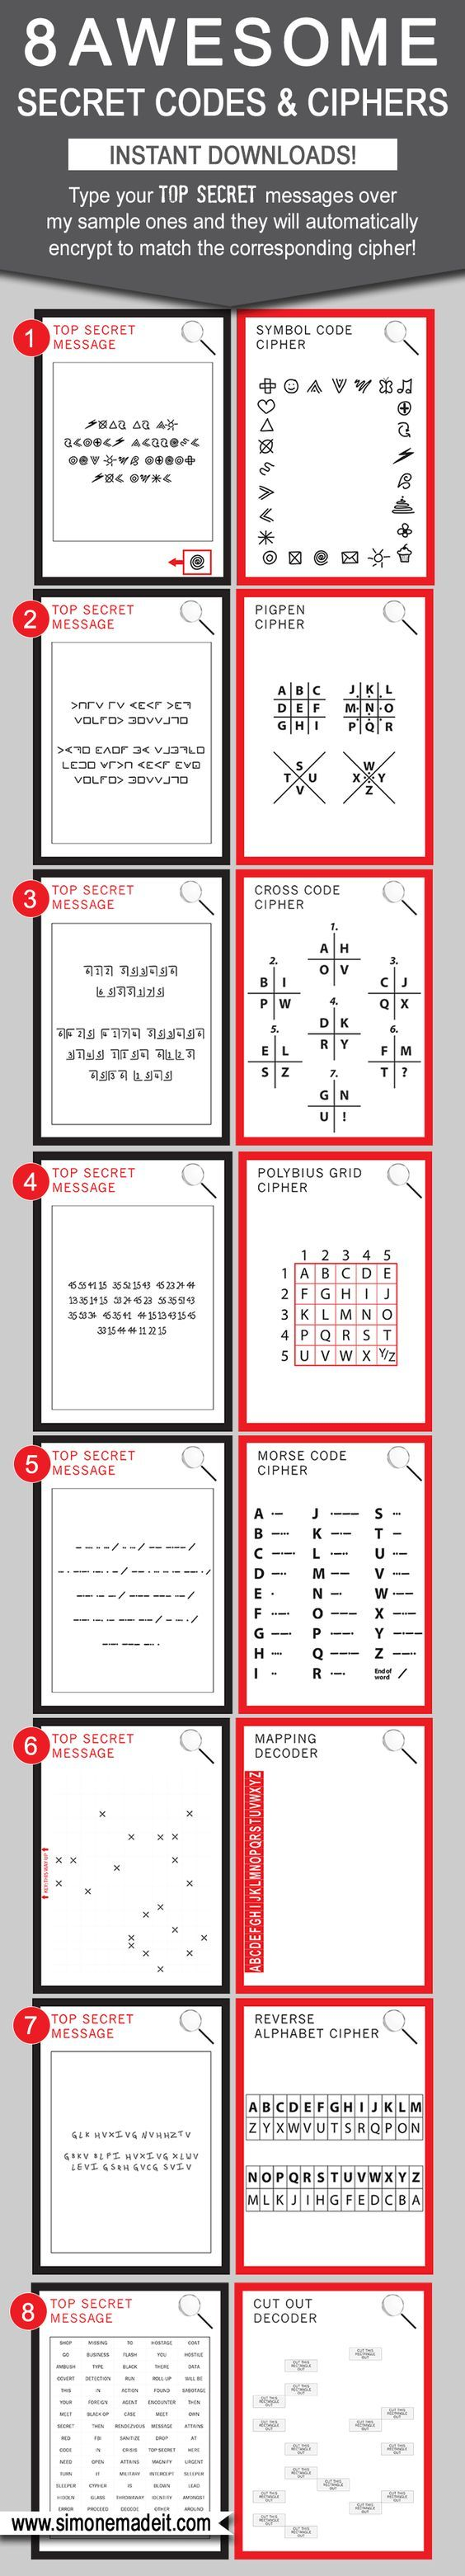 8 Awesome DIY Secret Codes for Kids - Type your own Top Secret message into the template and it will automatically encrypt to match the Cipher! Great as Spy Party games / activities, for playdates or even in the school classroom as code breaking games $6.50 via SIMONEmadeit.com: